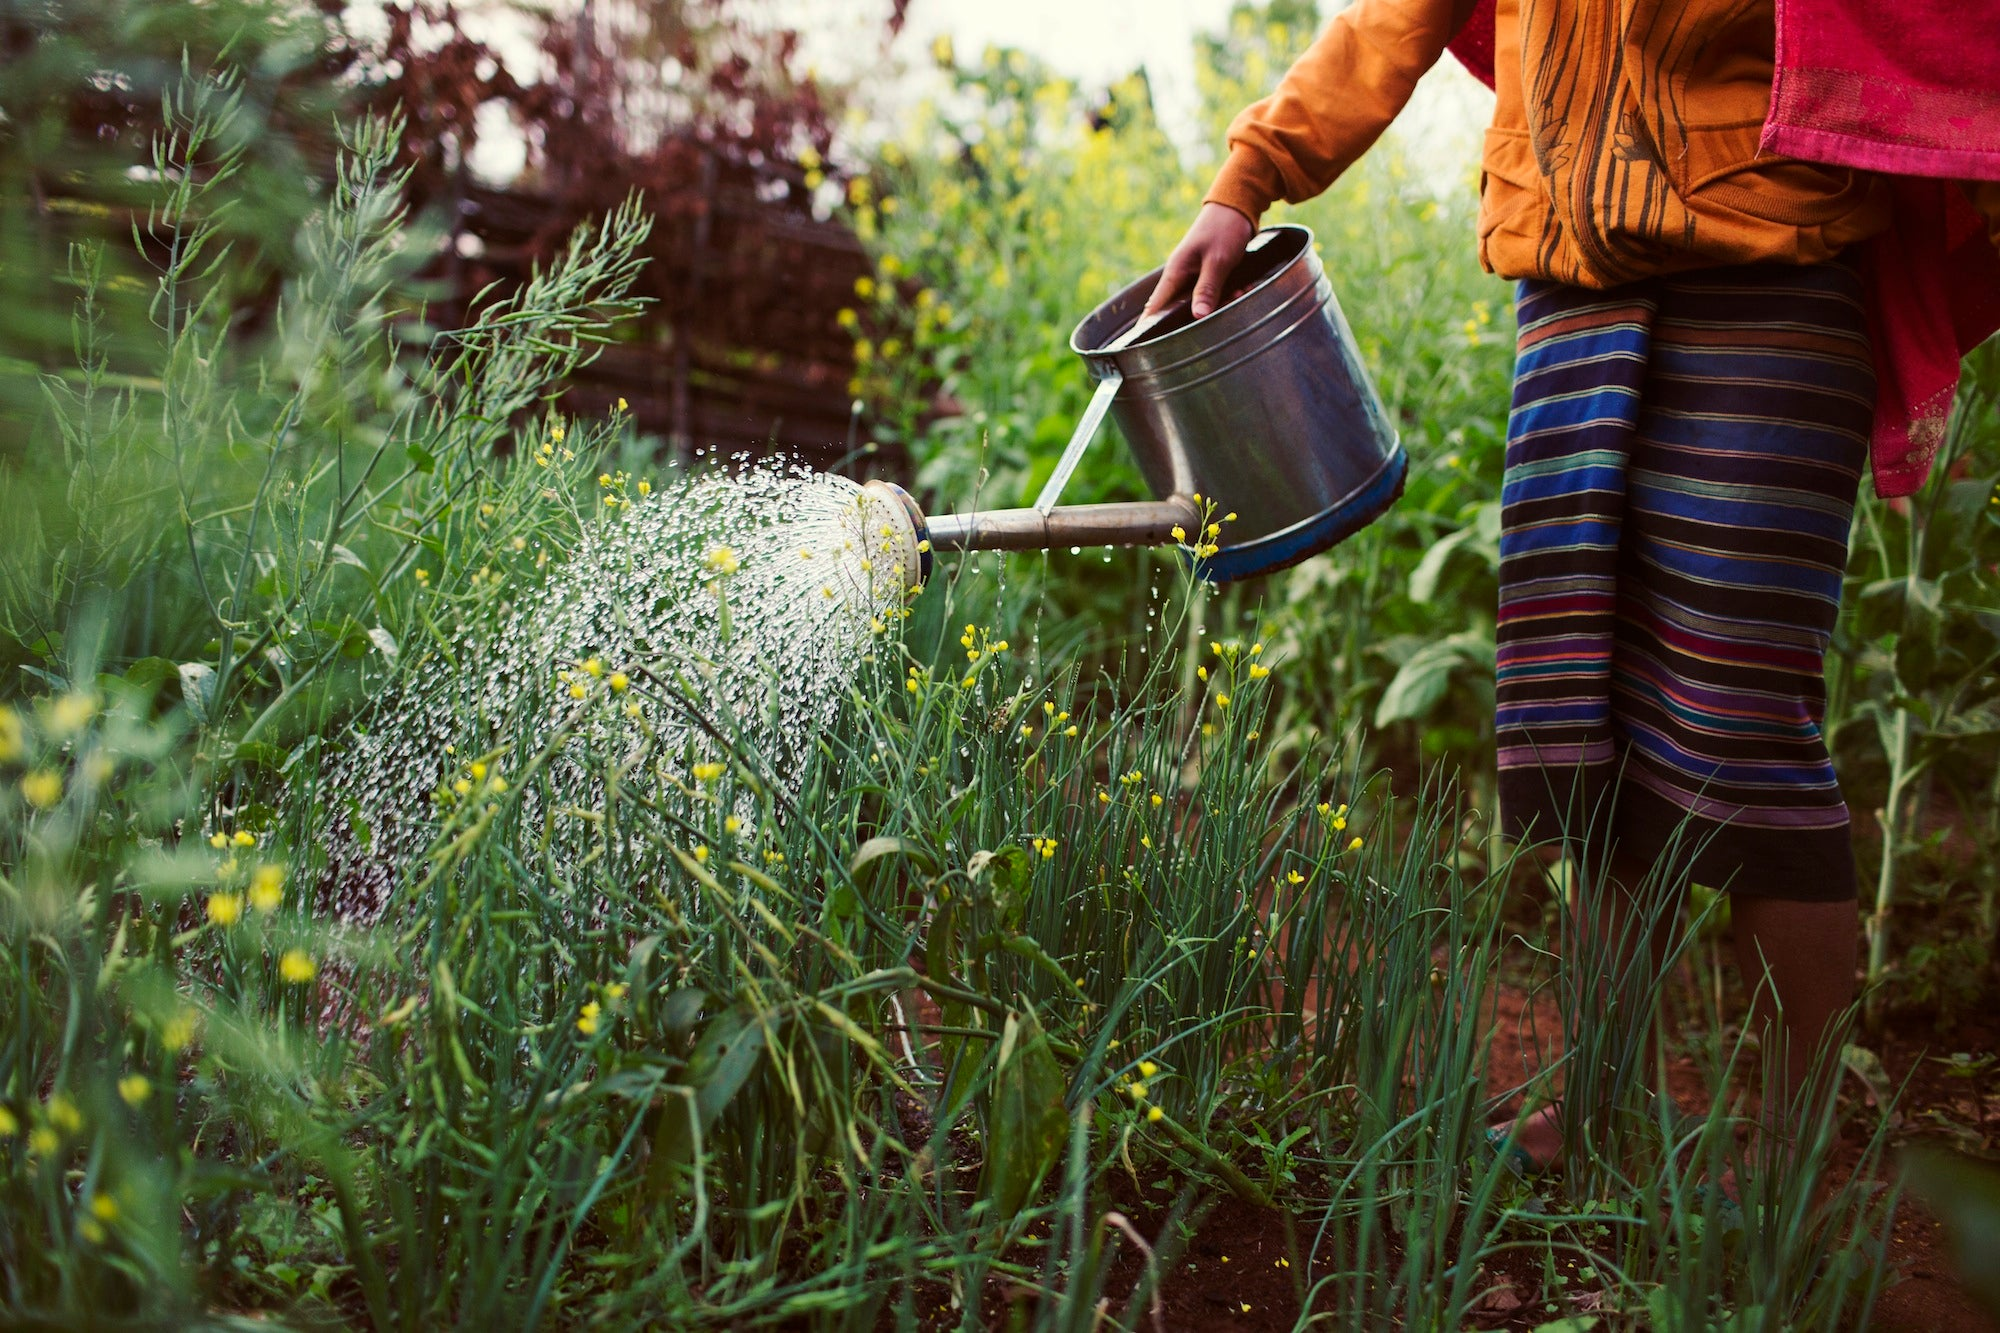 Watering a Vegetable Garden, Laos.